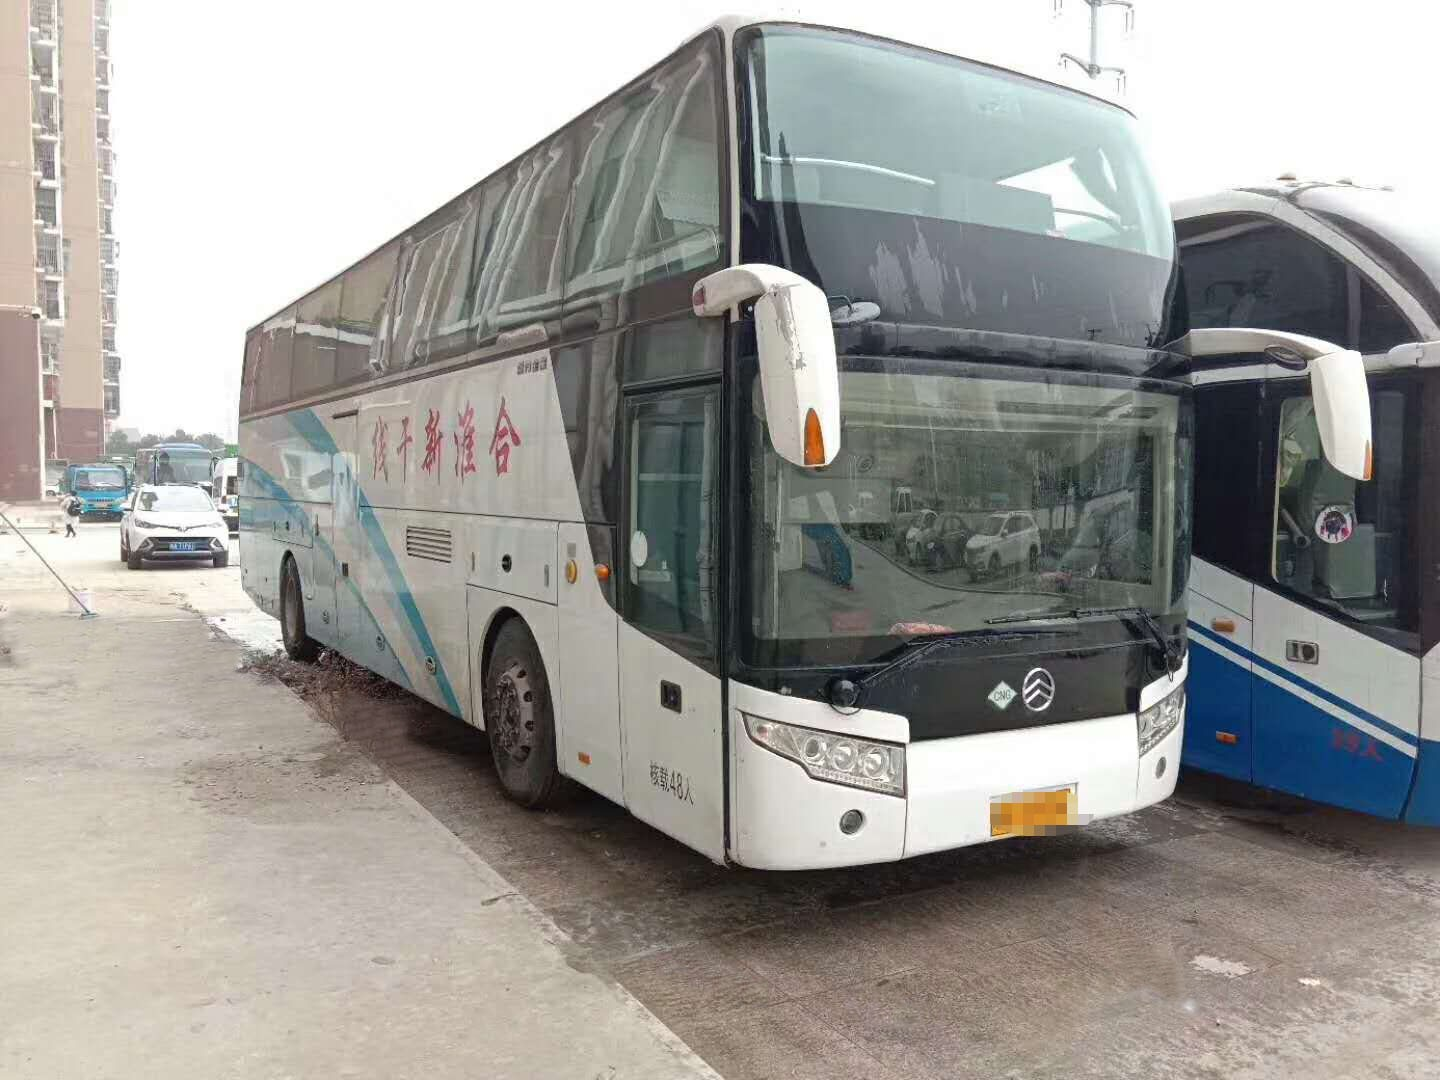 48 Seats CNG 12 Meters Second hand used coach bus 2013 year Airbag chassis with six new tires